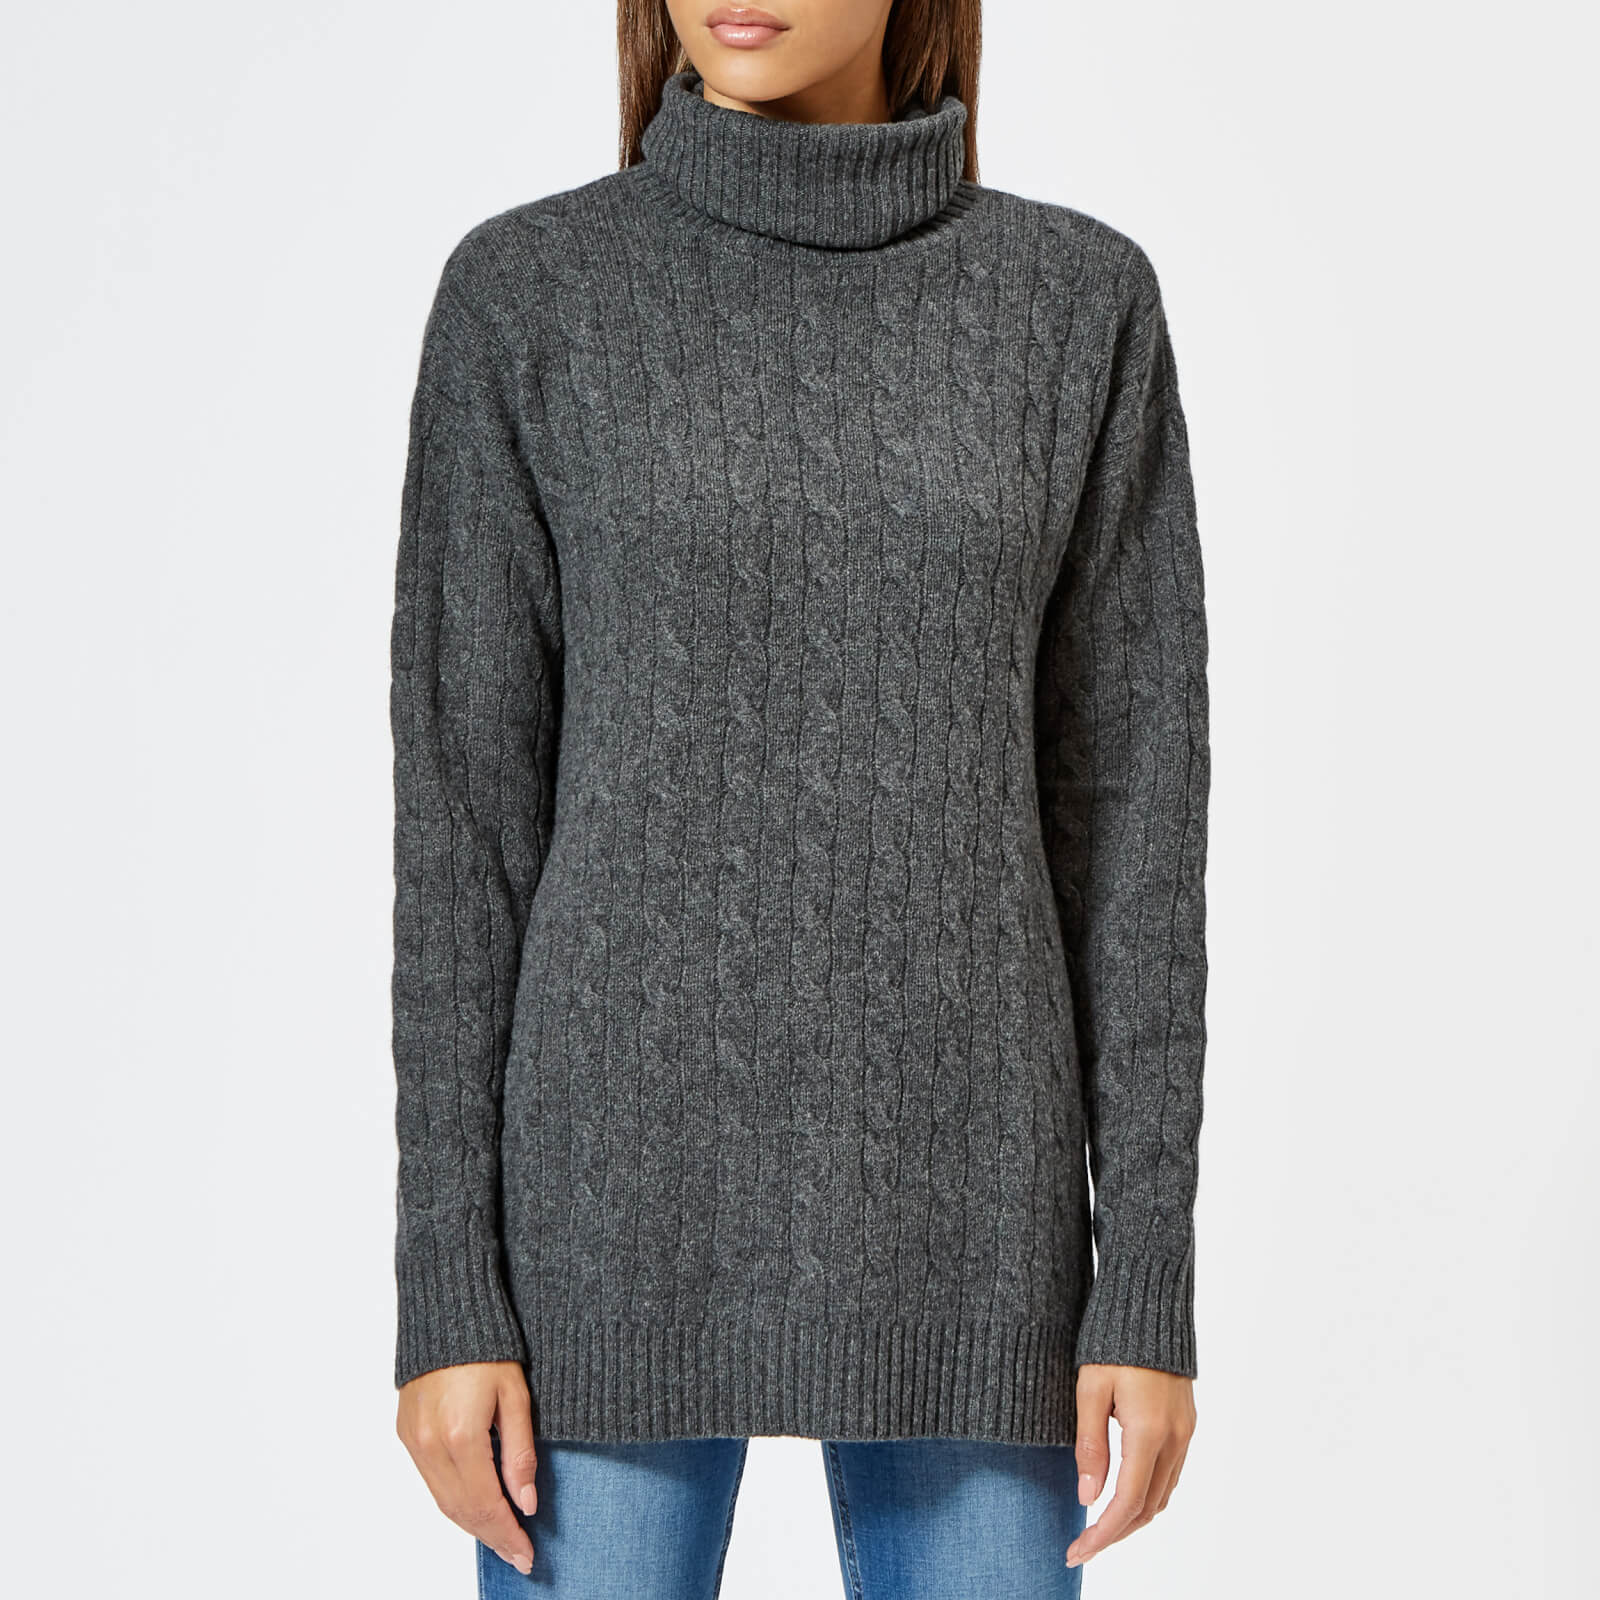 d1549e5c91a Polo Ralph Lauren Women s Wool And Cashmere Blend Roll Neck Jumper - Grey -  Free UK Delivery over £50